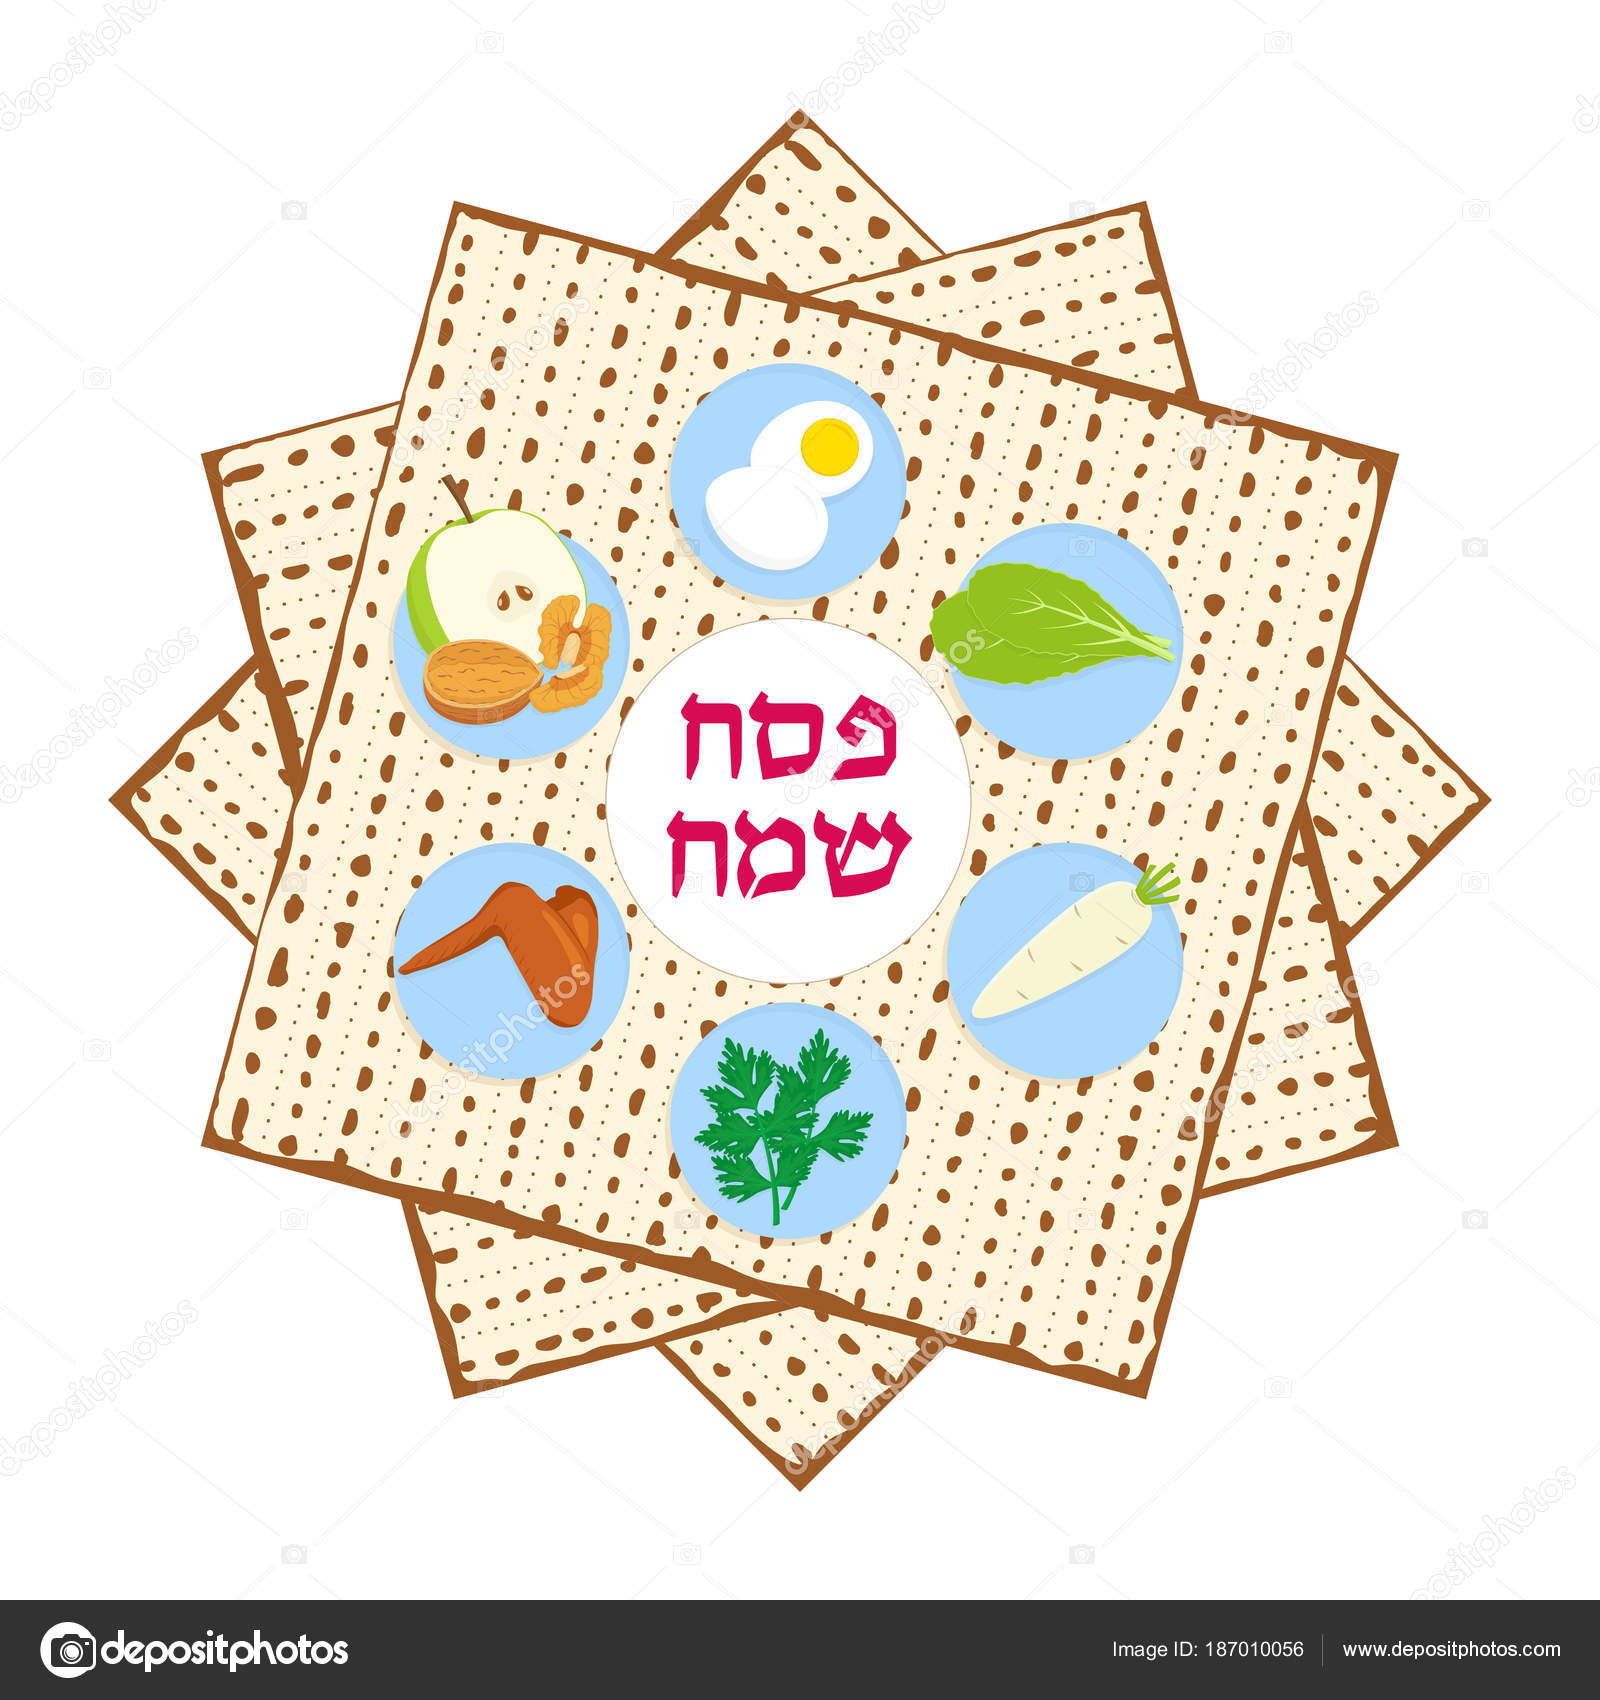 Jewish holiday of passover passover seder stock vector valenzi jewish holiday of passover pesach symbolic foods for passover seder jewish ritual feast matzah pesach unleavened bread greeting inscription in hebrew m4hsunfo